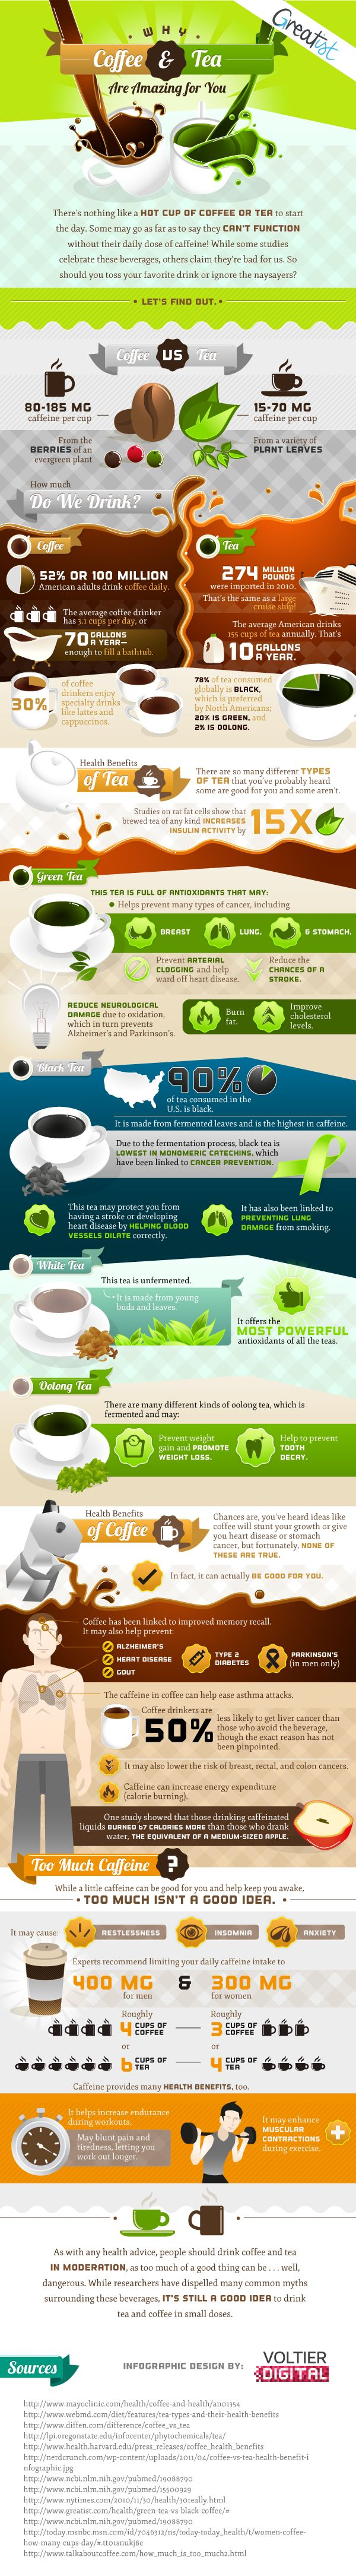 Coffee and tea are good for you! To find out how and why, read our handy guide to the health of these two common hot drinks.